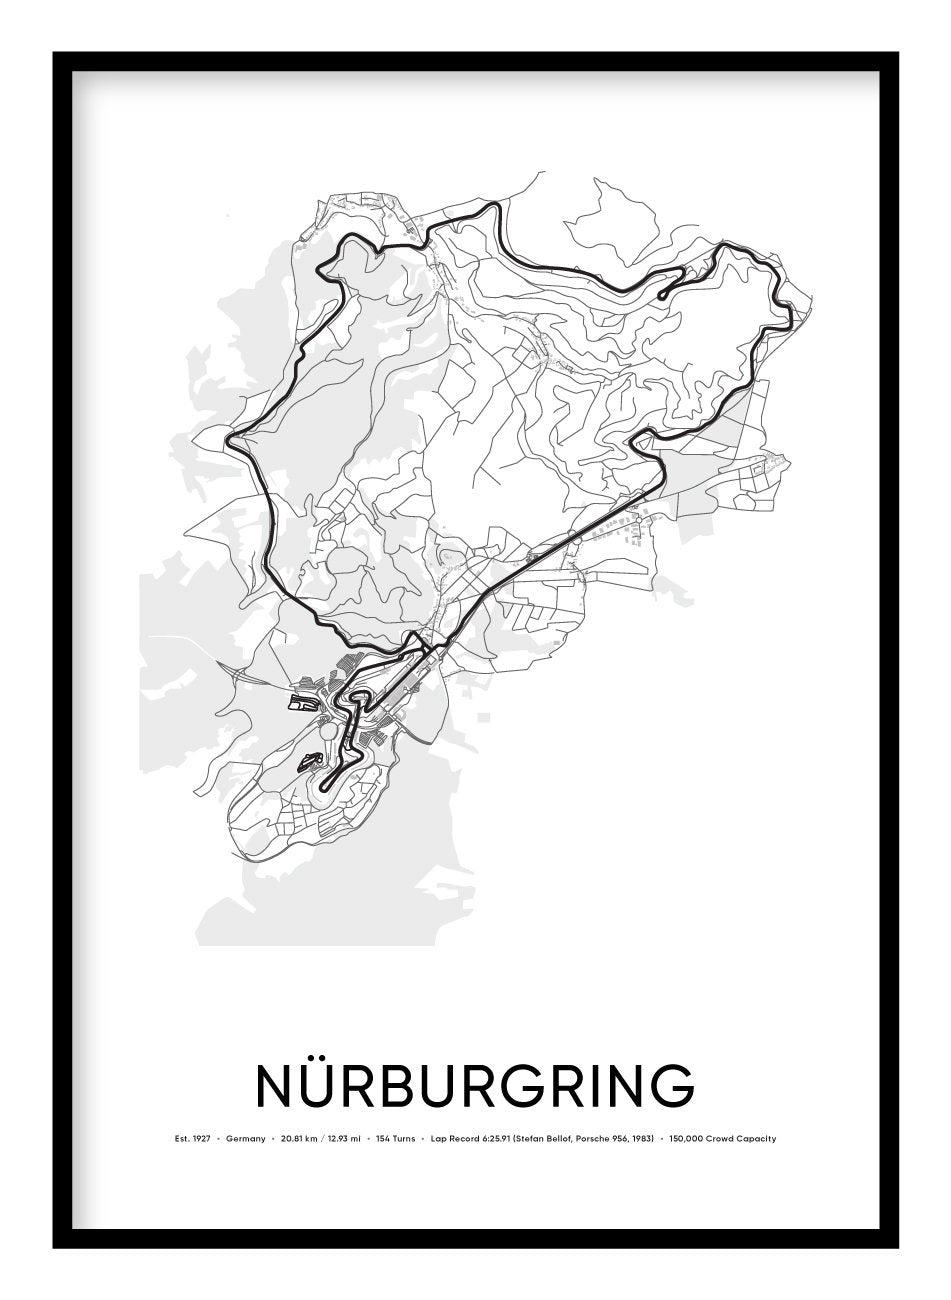 Nurburgring Nordschleife Race Track Poster